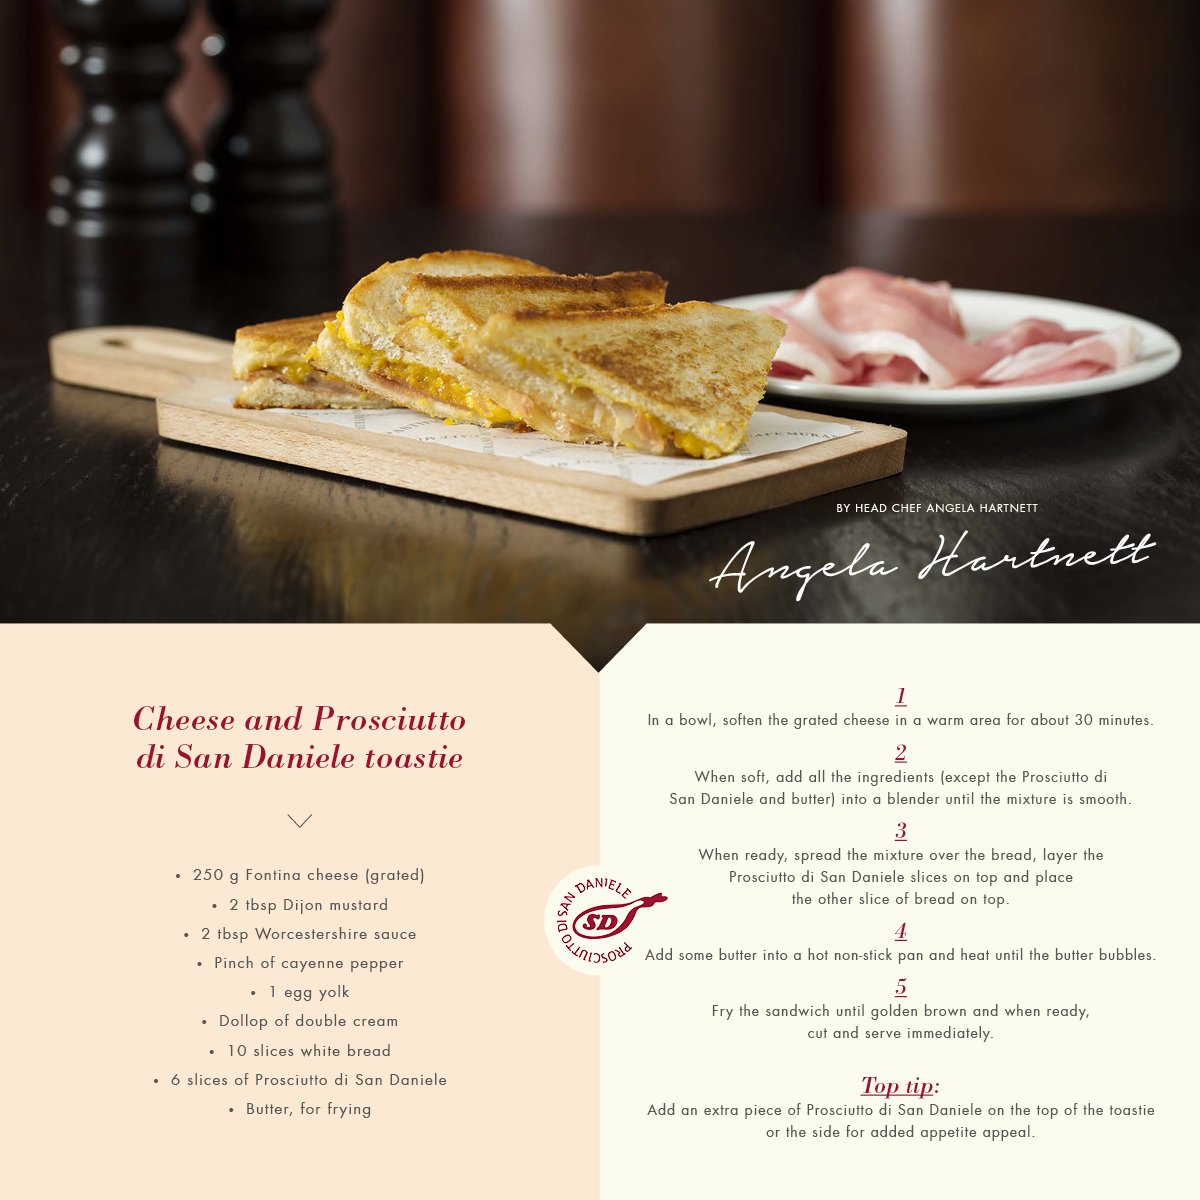 17 0009_San Daniele_Angela hartnett_recipe_FB_toastie